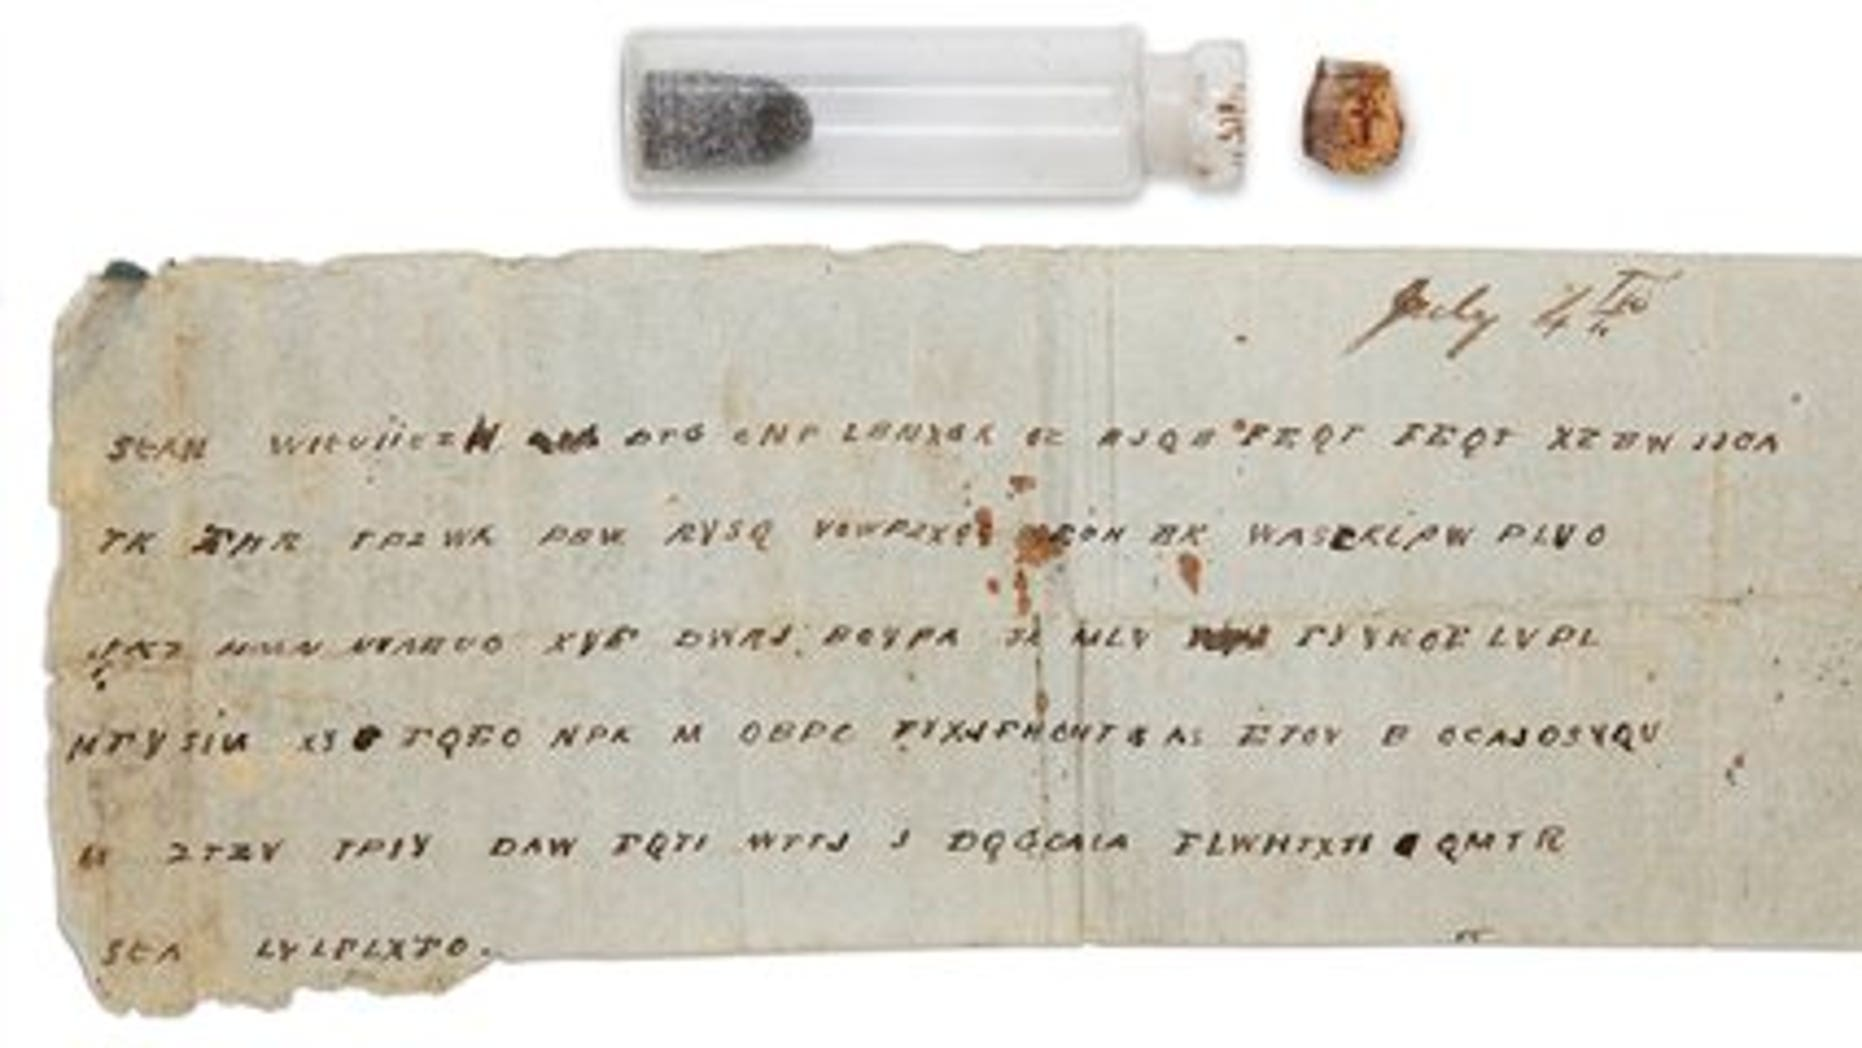 This undated image shows a Civil War-era glass vial and the message that was tucked inside it at the Museum of the Confederacy in Richmond, Va.